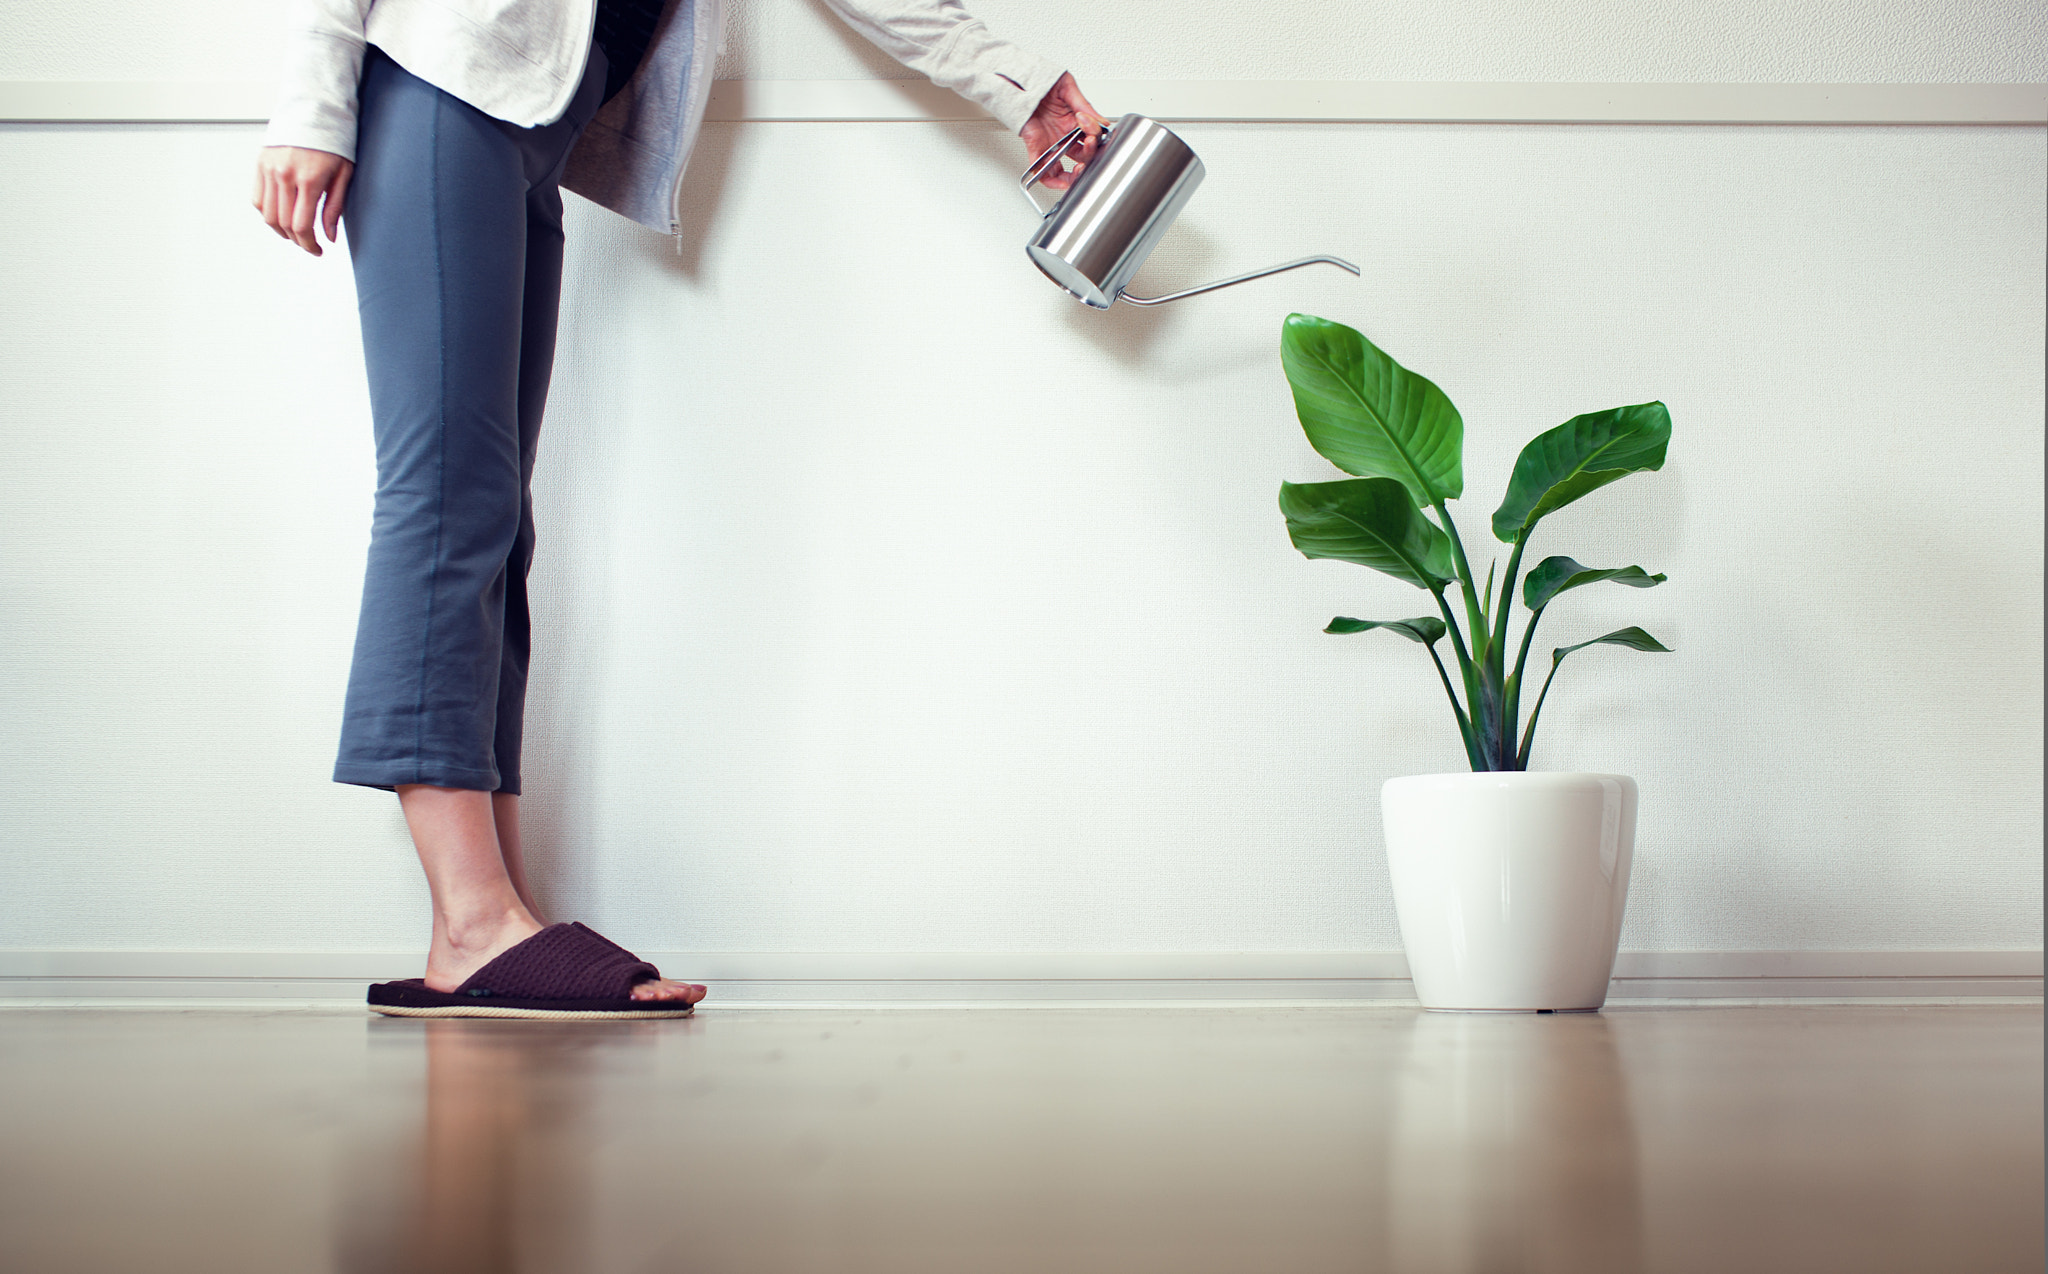 Photograph The Leading Cause of Household Plant Death is Overwatering by Ben Torode on 500px